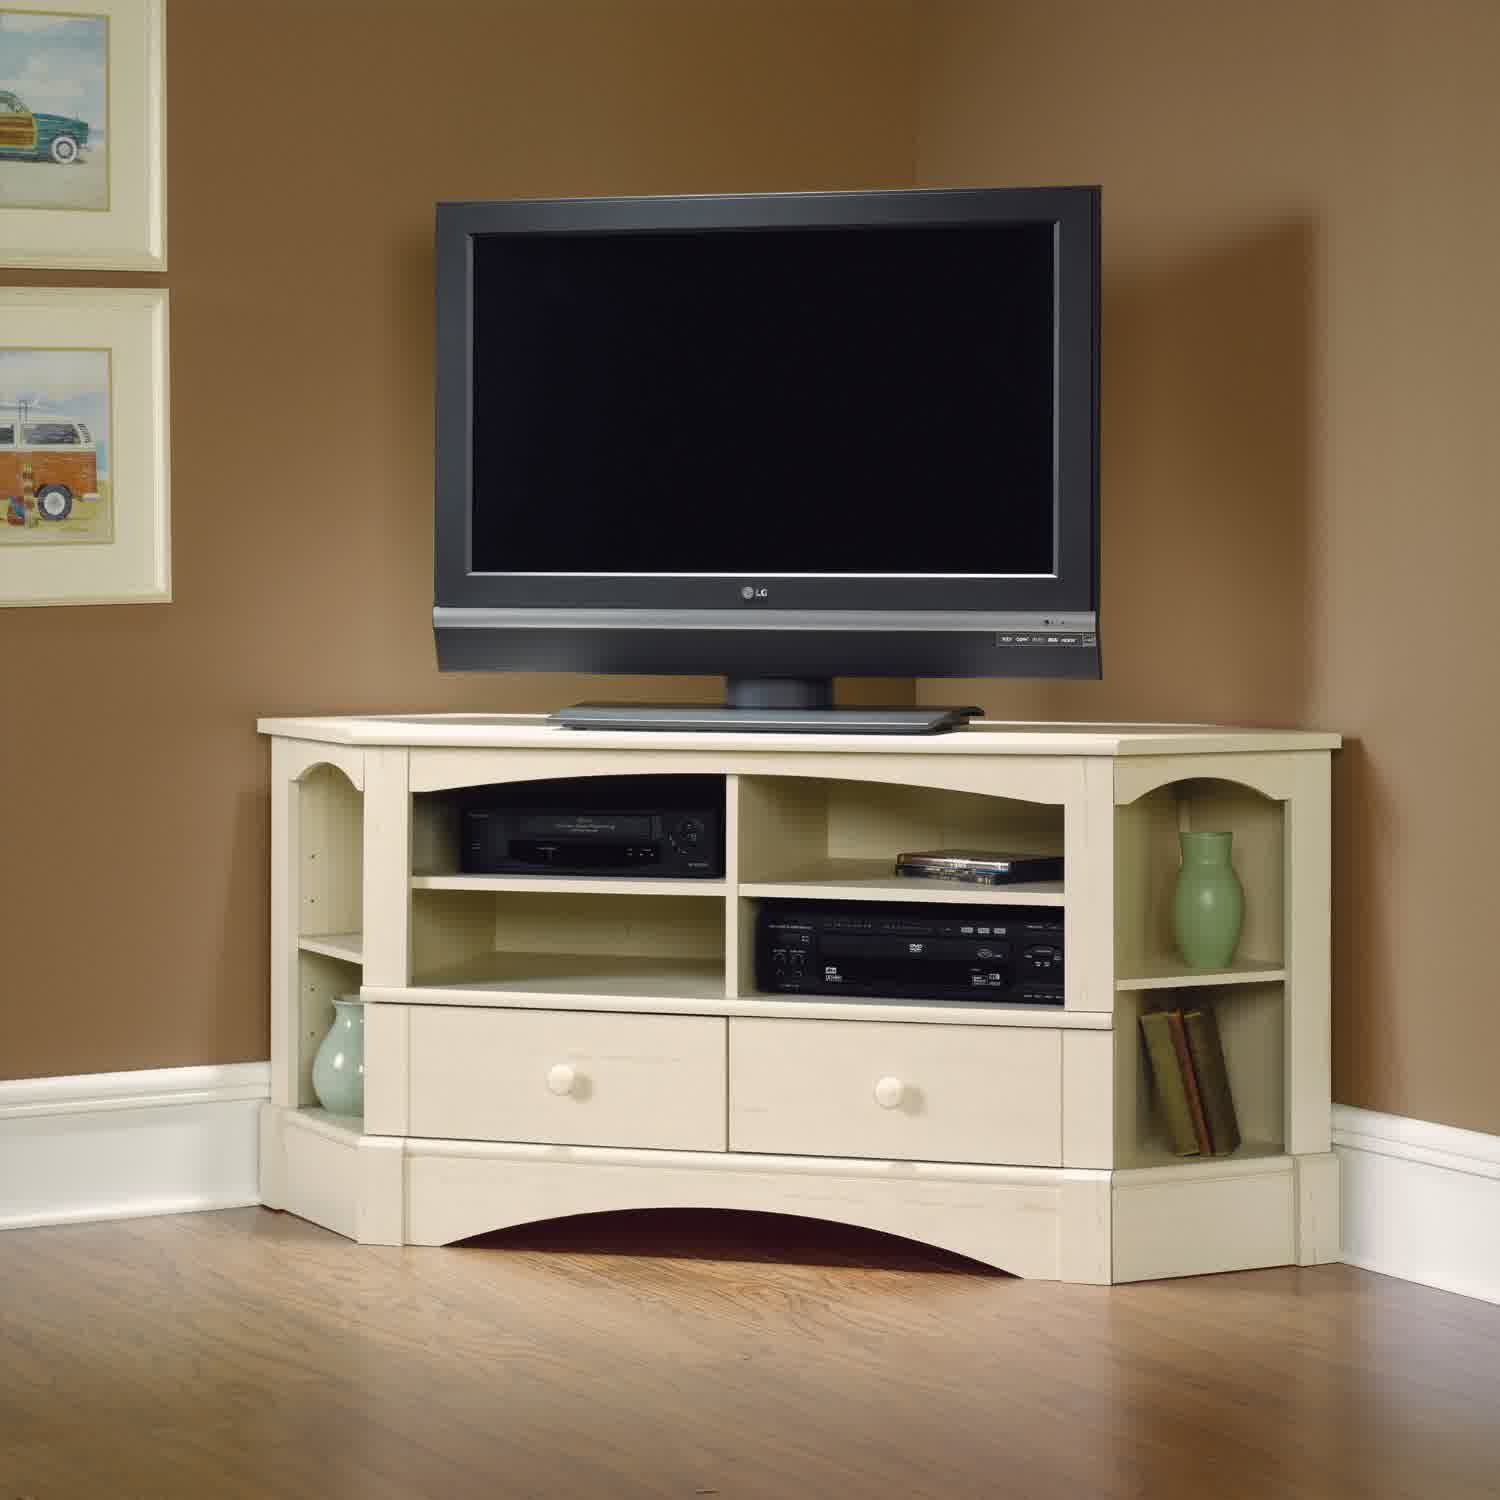 simple white center ikea in whites two media players a flat tv unit some small